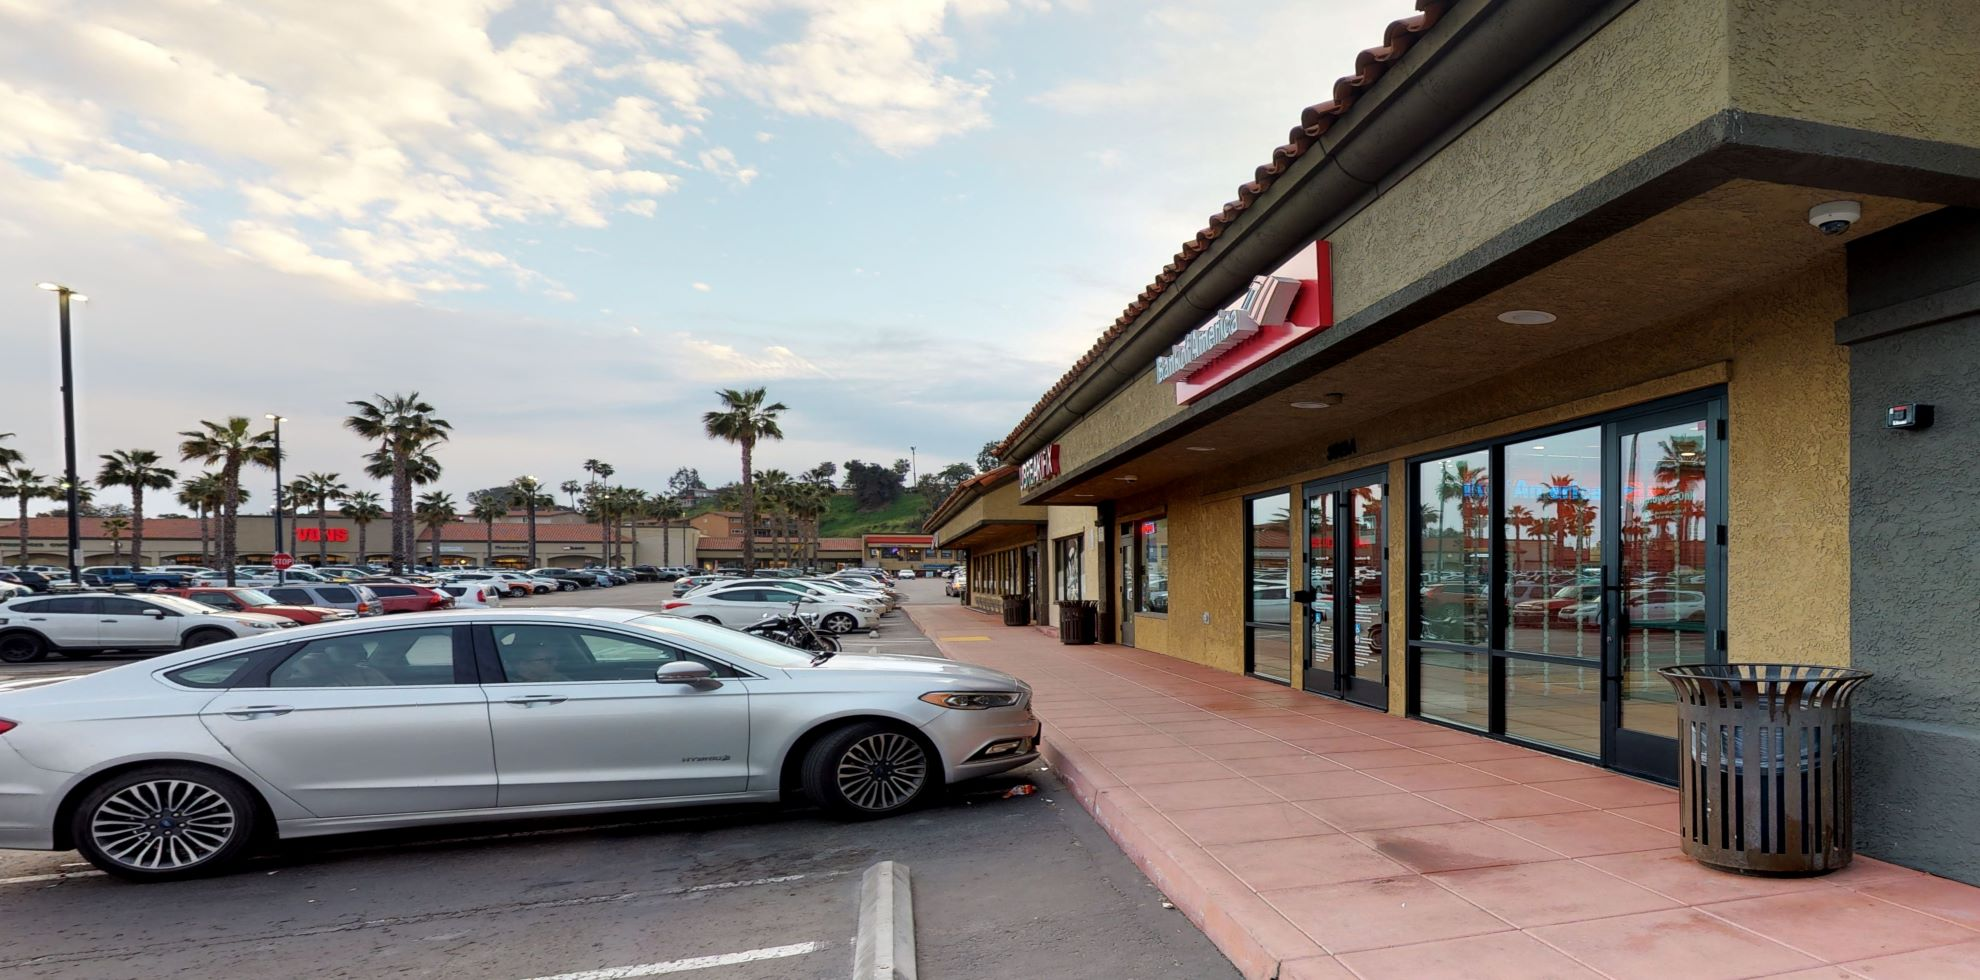 Bank of America financial center with walk-up ATM | 3619 Midway Dr, San Diego, CA 92110